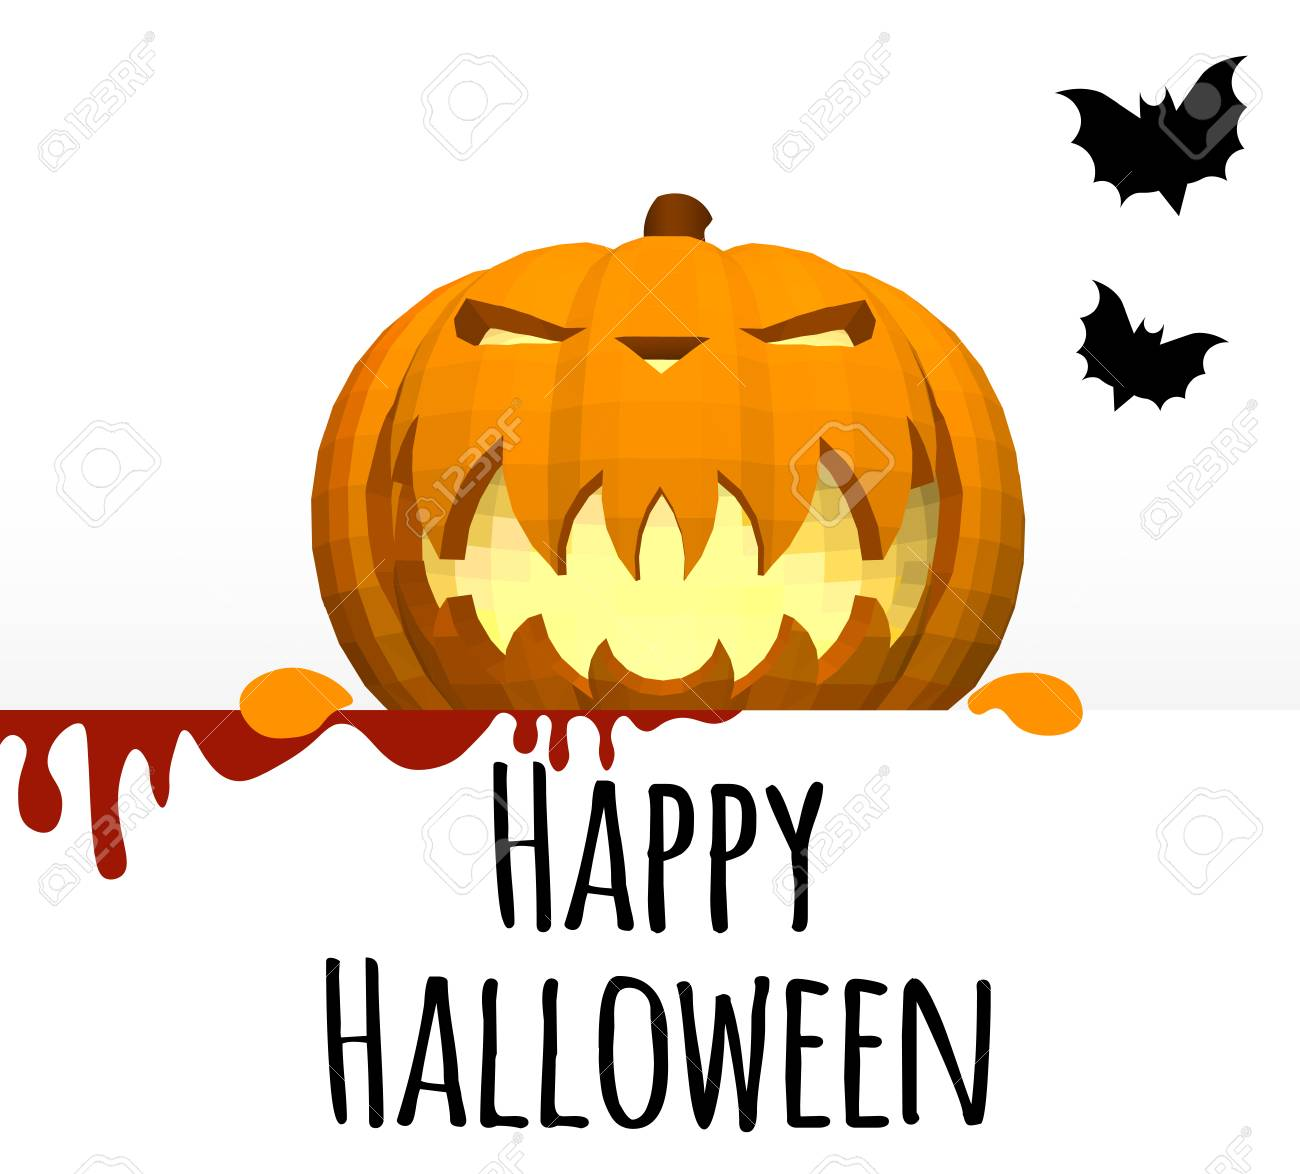 Happy Halloween. A Template On A White Background With A Pumpkin ...